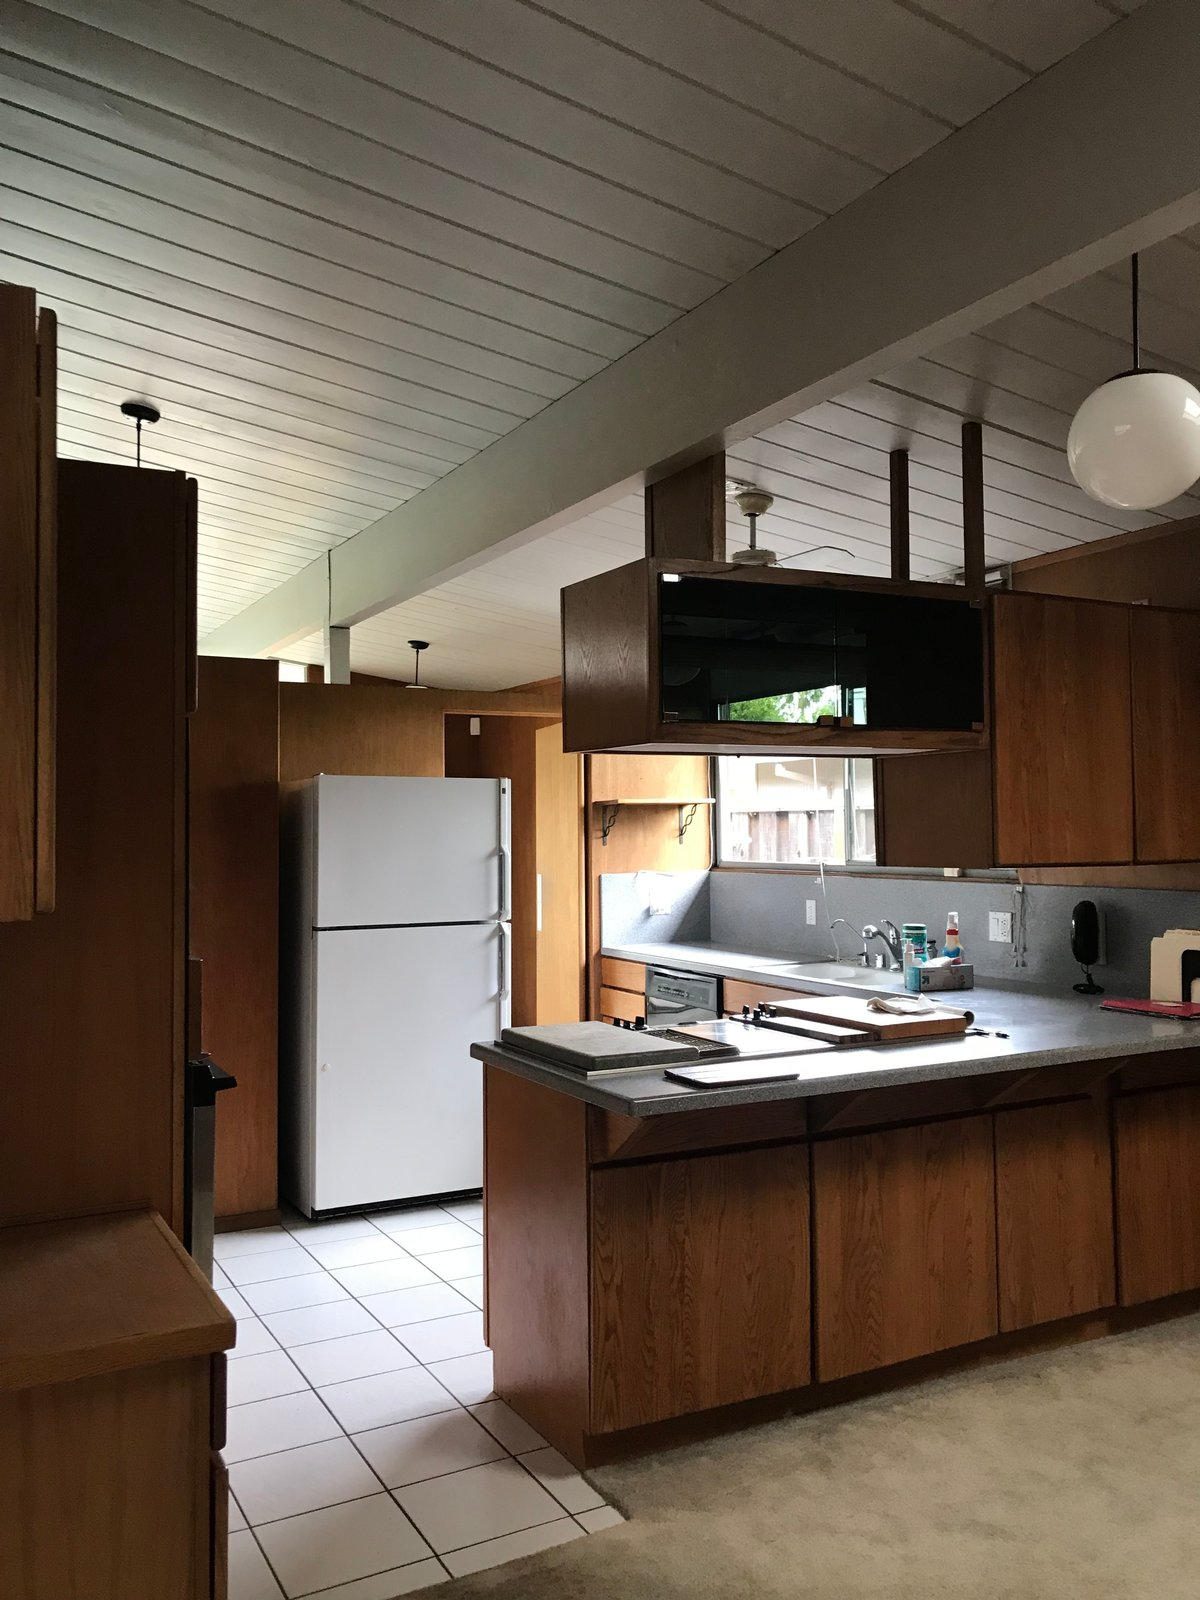 Before: Though floor-to-ceiling windows drew light into the home, the kitchen felt dark due to the mahogany wood panels.   Photo 6 of 9 in Budget Breakdown: A Cramped Eichler Kitchen Gets a $49K Refresh